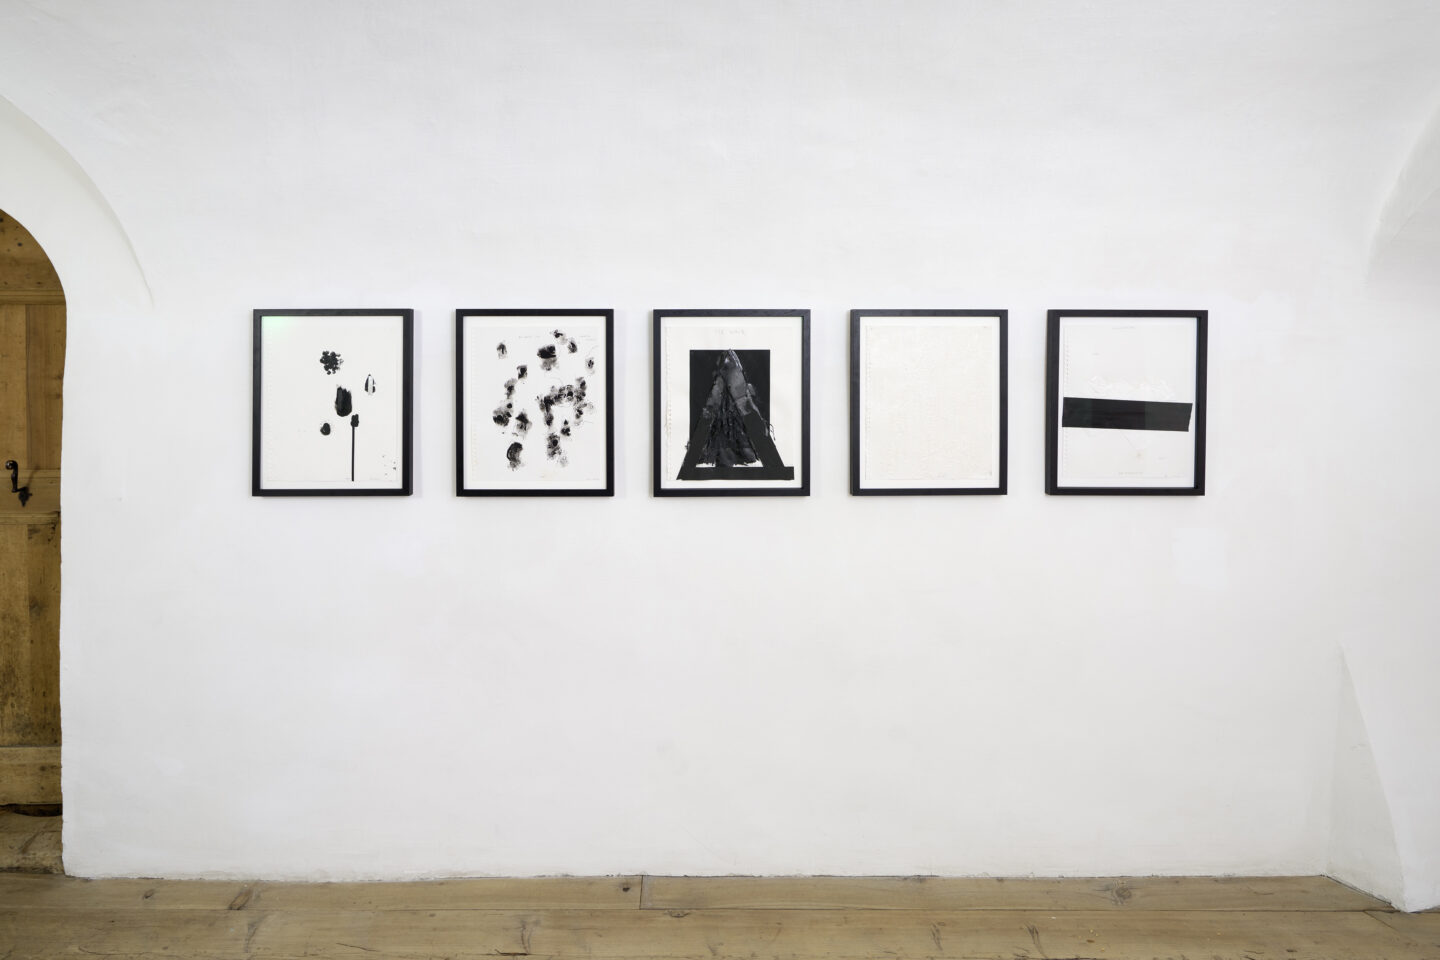 Exhibition View Groupshow «Absolutely Tschudi; view on Not Vital» at Galerie Tschudi, Zuoz, 2019 / Photo: Ralph Feiner, Malans / Courtesy: the artists and Galerie Tschudi, Zuoz